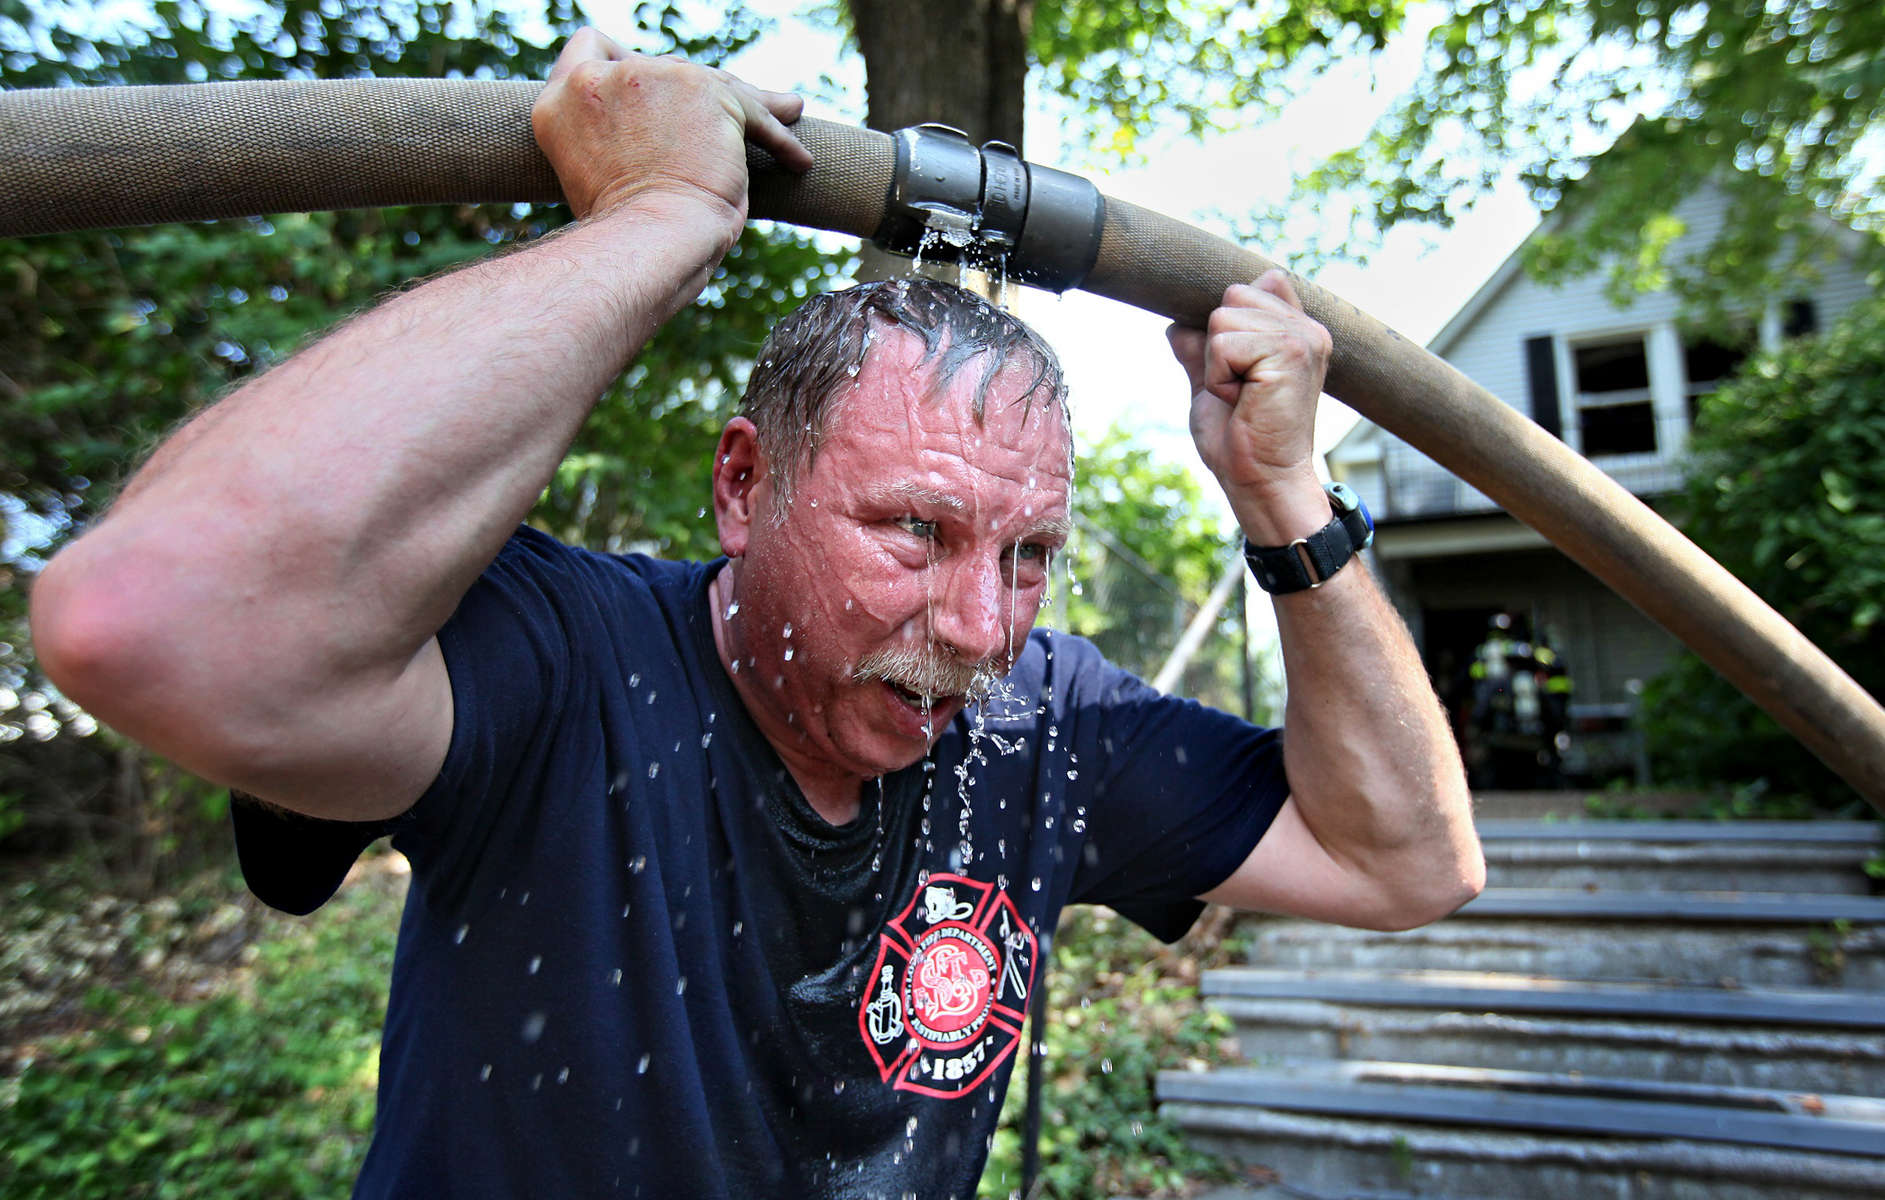 St. Louis fire fighter Ken Walters, with Truck 6, cools off with some water leaking from a fire hose after he helped put out a house fire in the 2000 block of McCausland Avenue in St. Louis on Monday, Sept. 9, 2013.  {quote}It was really cooking in there{quote} said Walters who was one of the first fire fighters in house battling the flames.  All the residents of the home escape safely and one was hurt in the one alarm fire.  Additional help from Maplewood and Richmond Heights fire departments was called to the scene as precaution against Monday's hot weather.Photo By David Carson, dcarson@post-dispatch.com